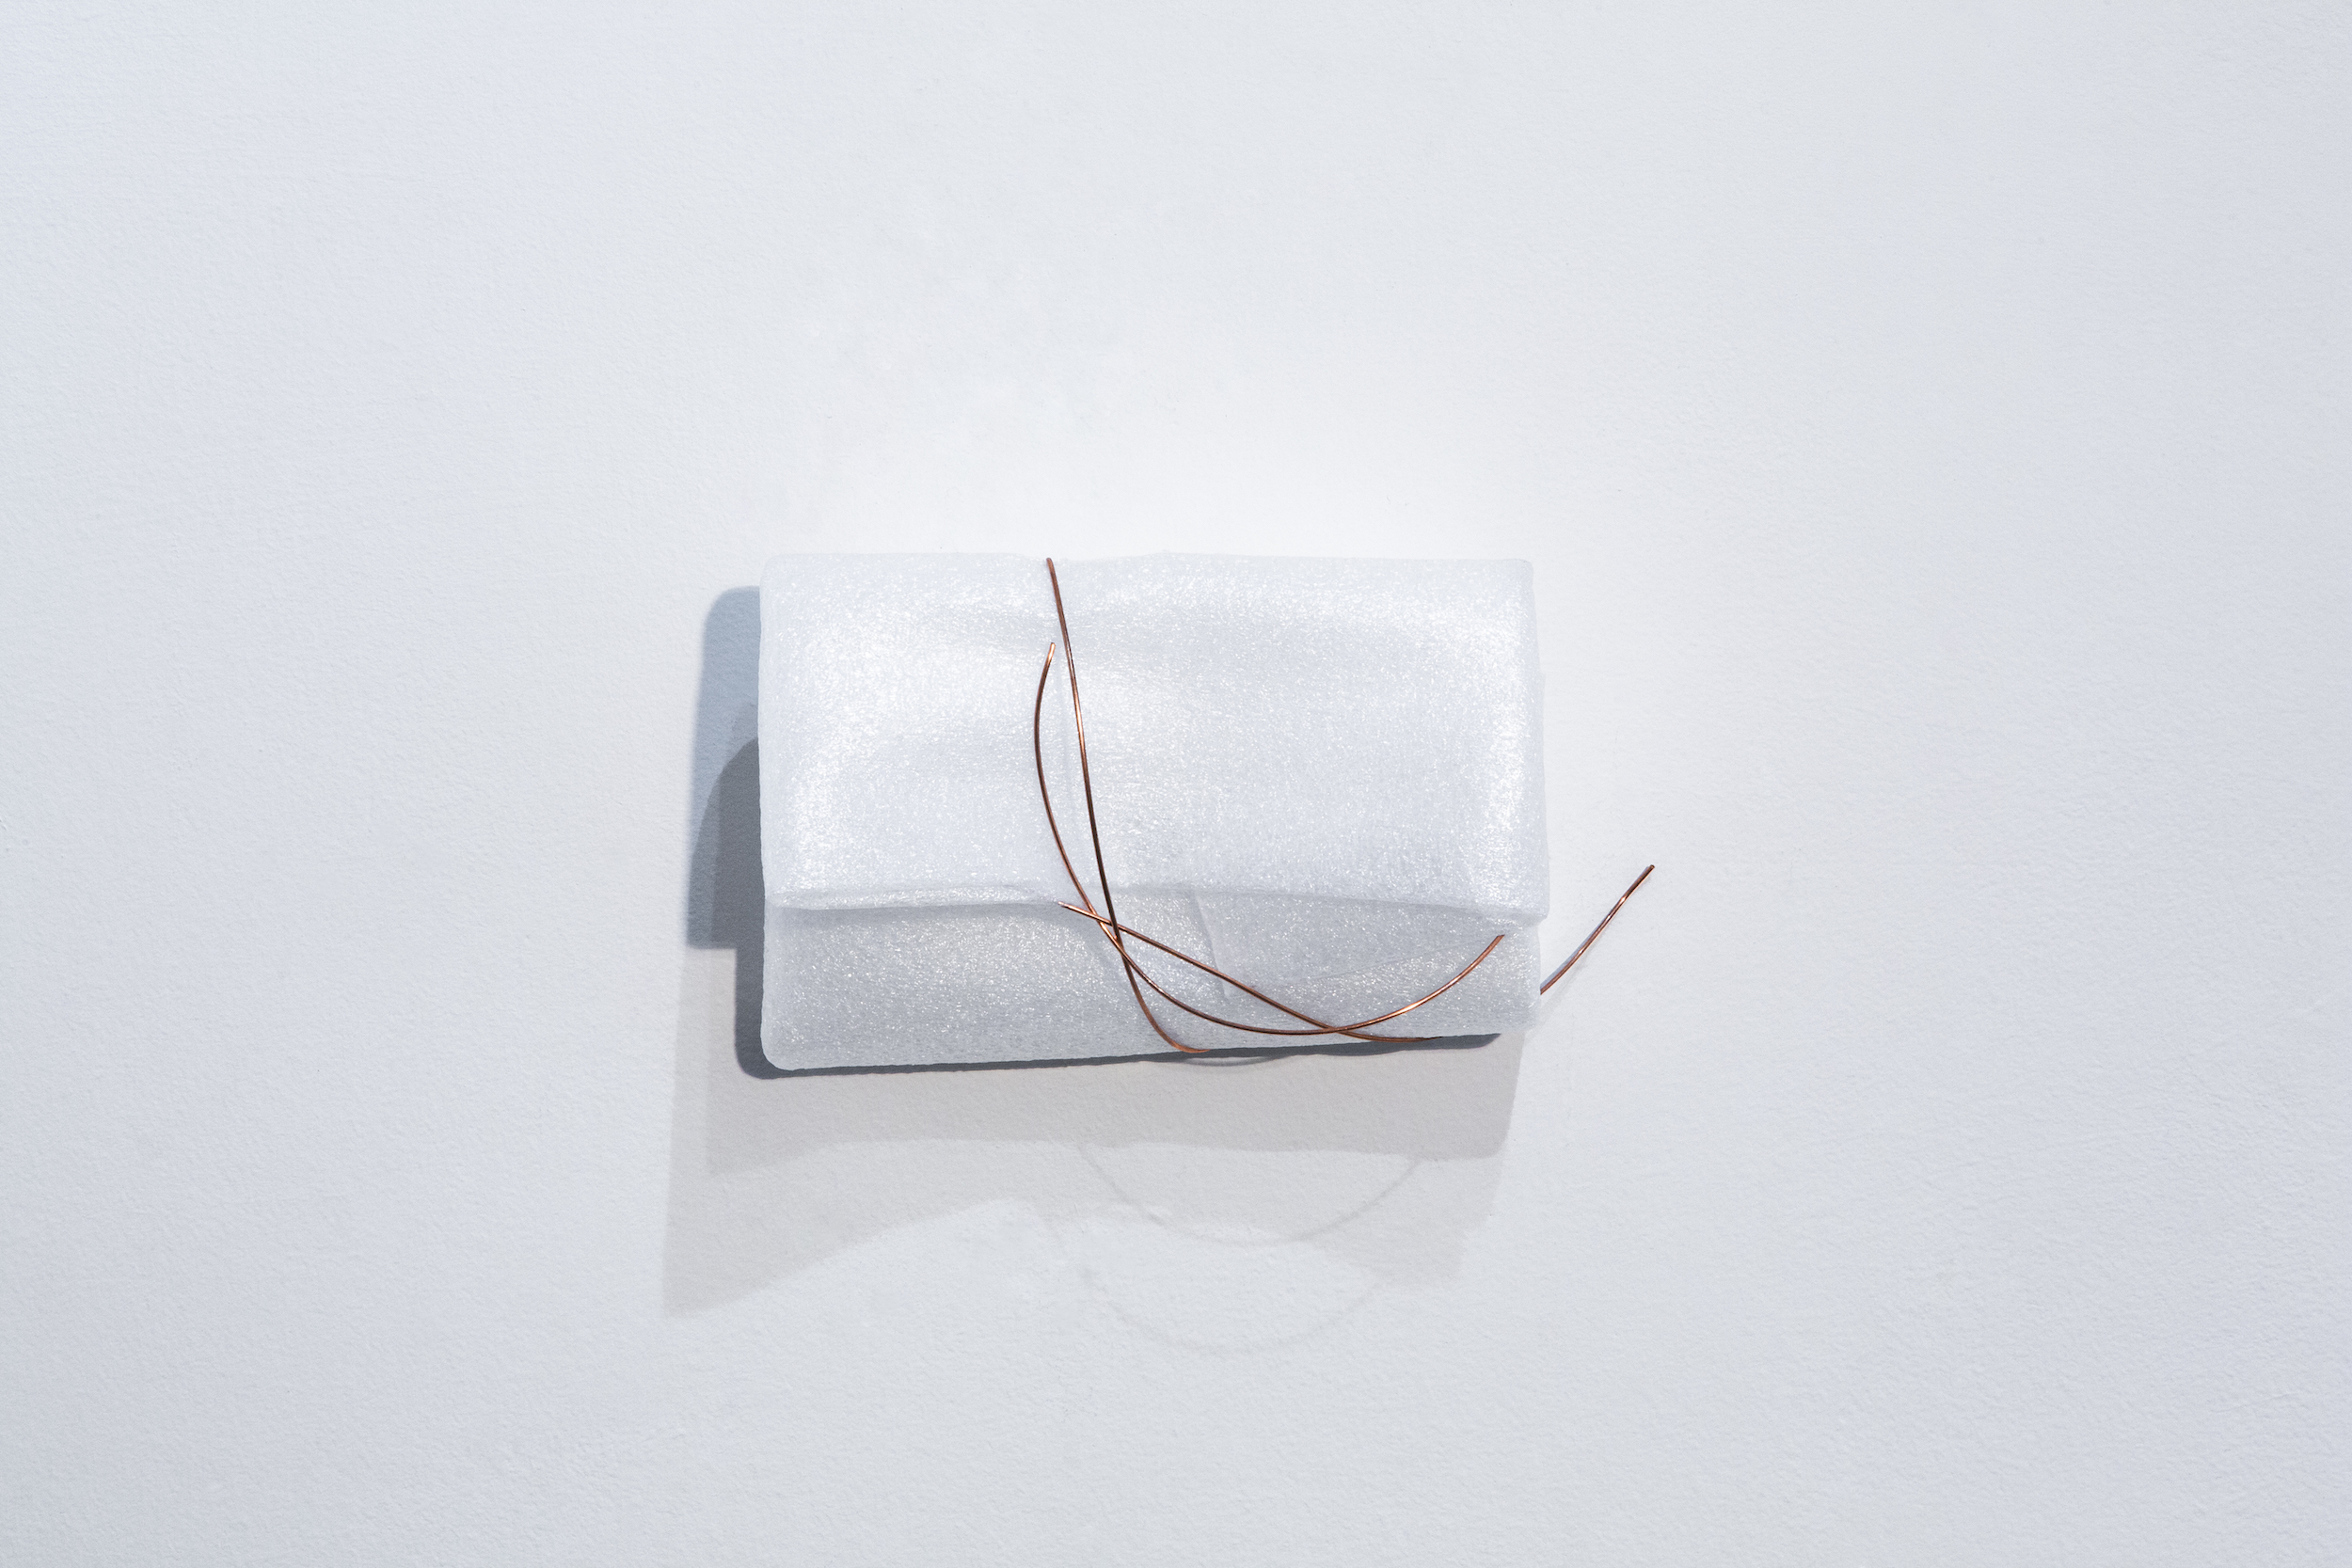 A different kind of love    Used foam packaging, and copper wire  8 x 4 1/2 x 3 1/2 inches  2018